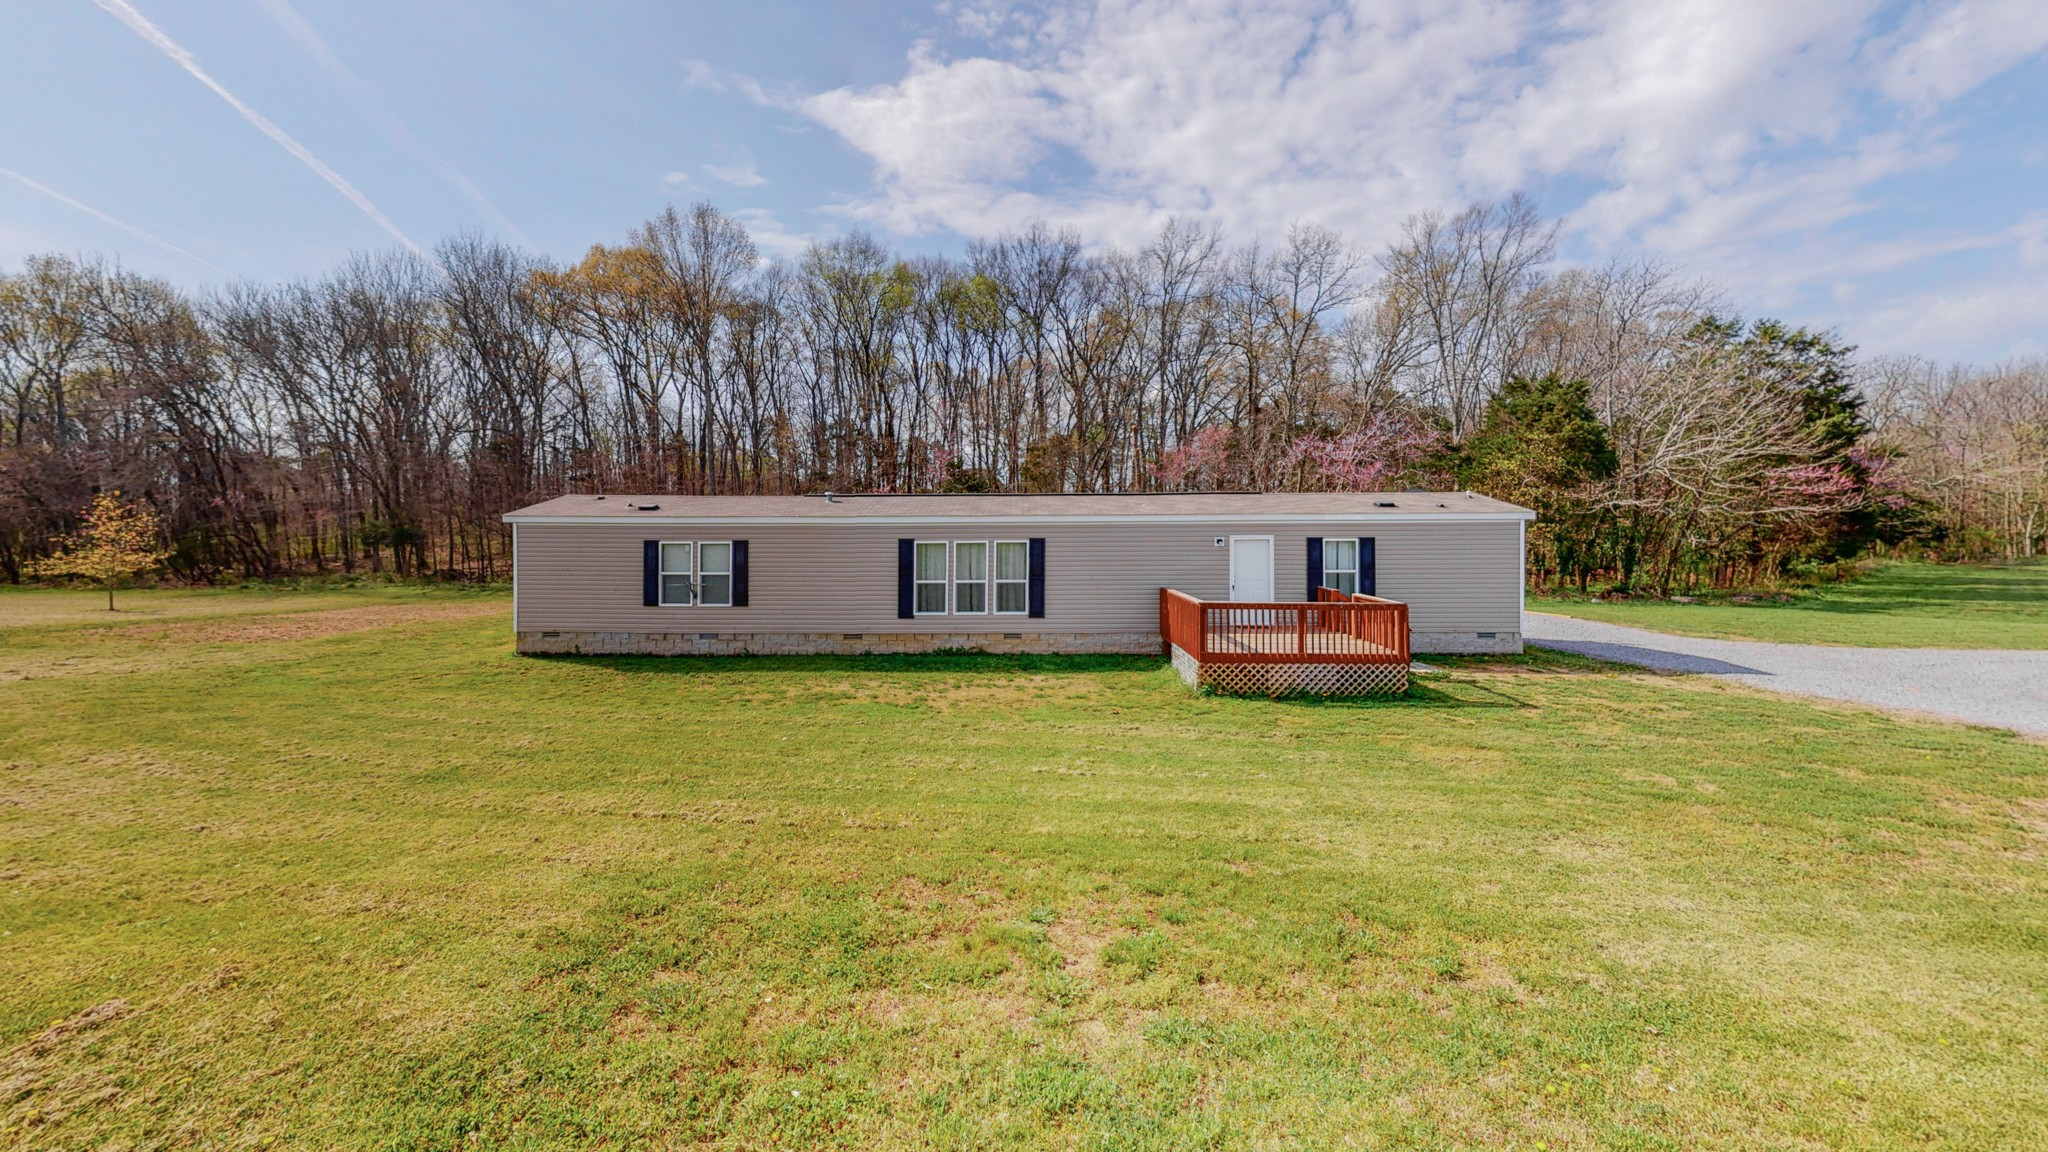 3 bed/2 bath Mobile Home built in 2017 sitting on permanent foundation ,5.6 acres tract in growing Rutherford County. Covered back deck...storage building and all appliances to remain......467 ft. road frontage...many options here...Buyers agent to verify  all info